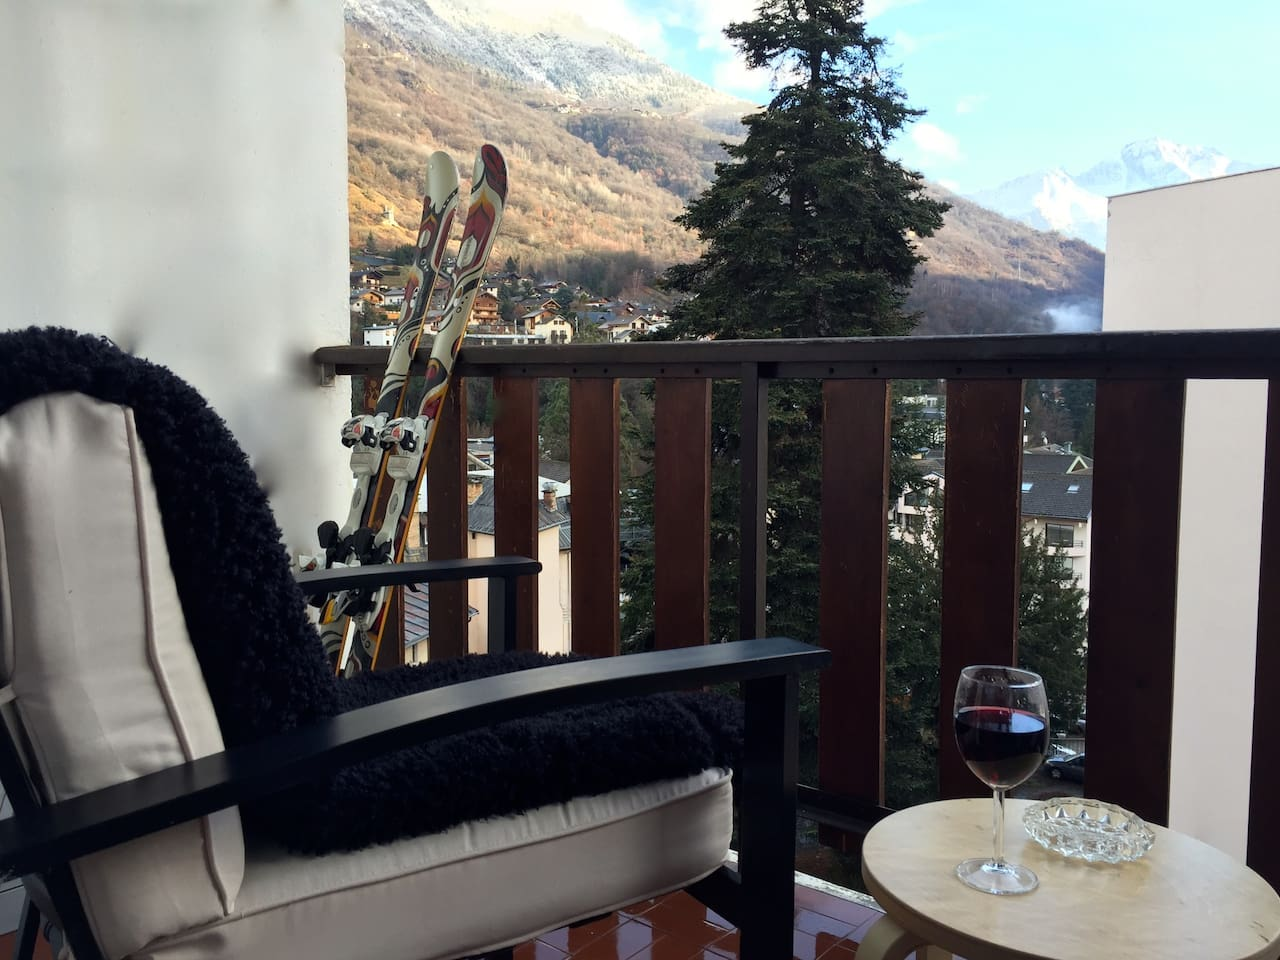 Enjoy a glass of wine on the balcony after a day on the slopes